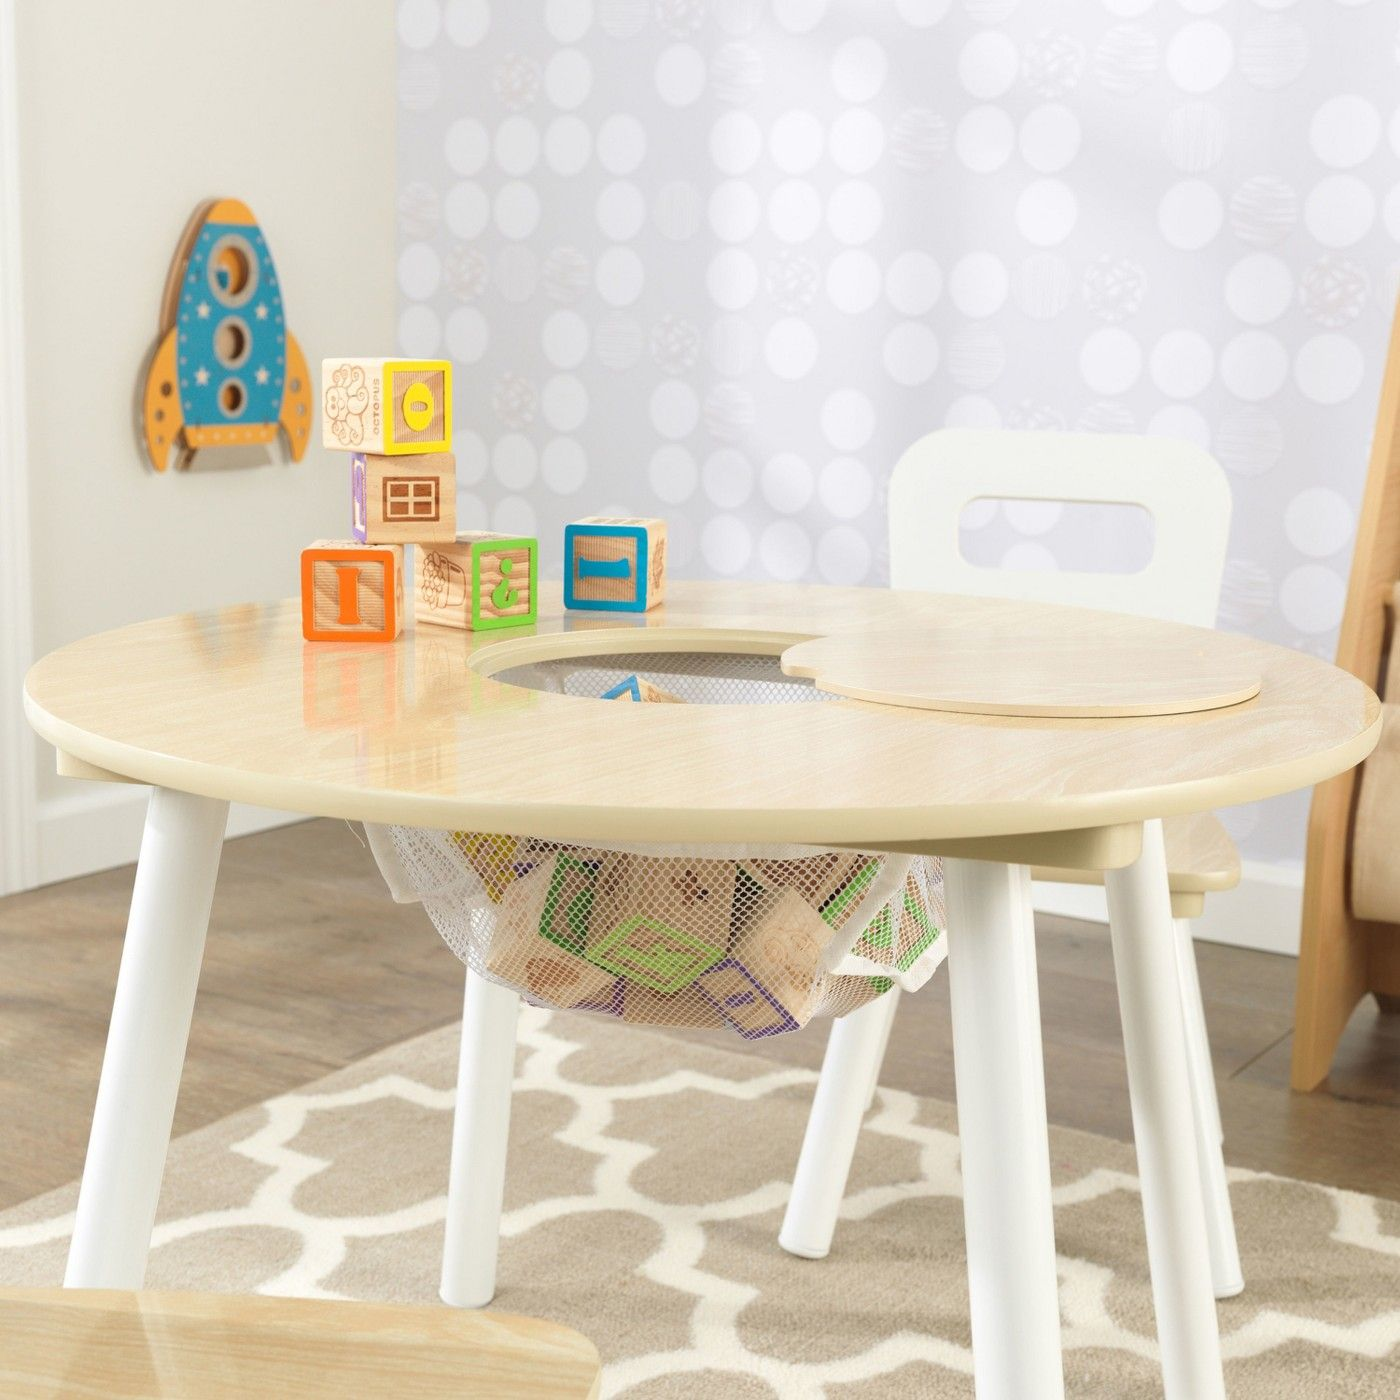 Round Table And Chair White Natural Set Of 2 Kidkraft Image 2 Of 5 Round Table And Chairs Kids Table Chair Set Table And Chair Sets